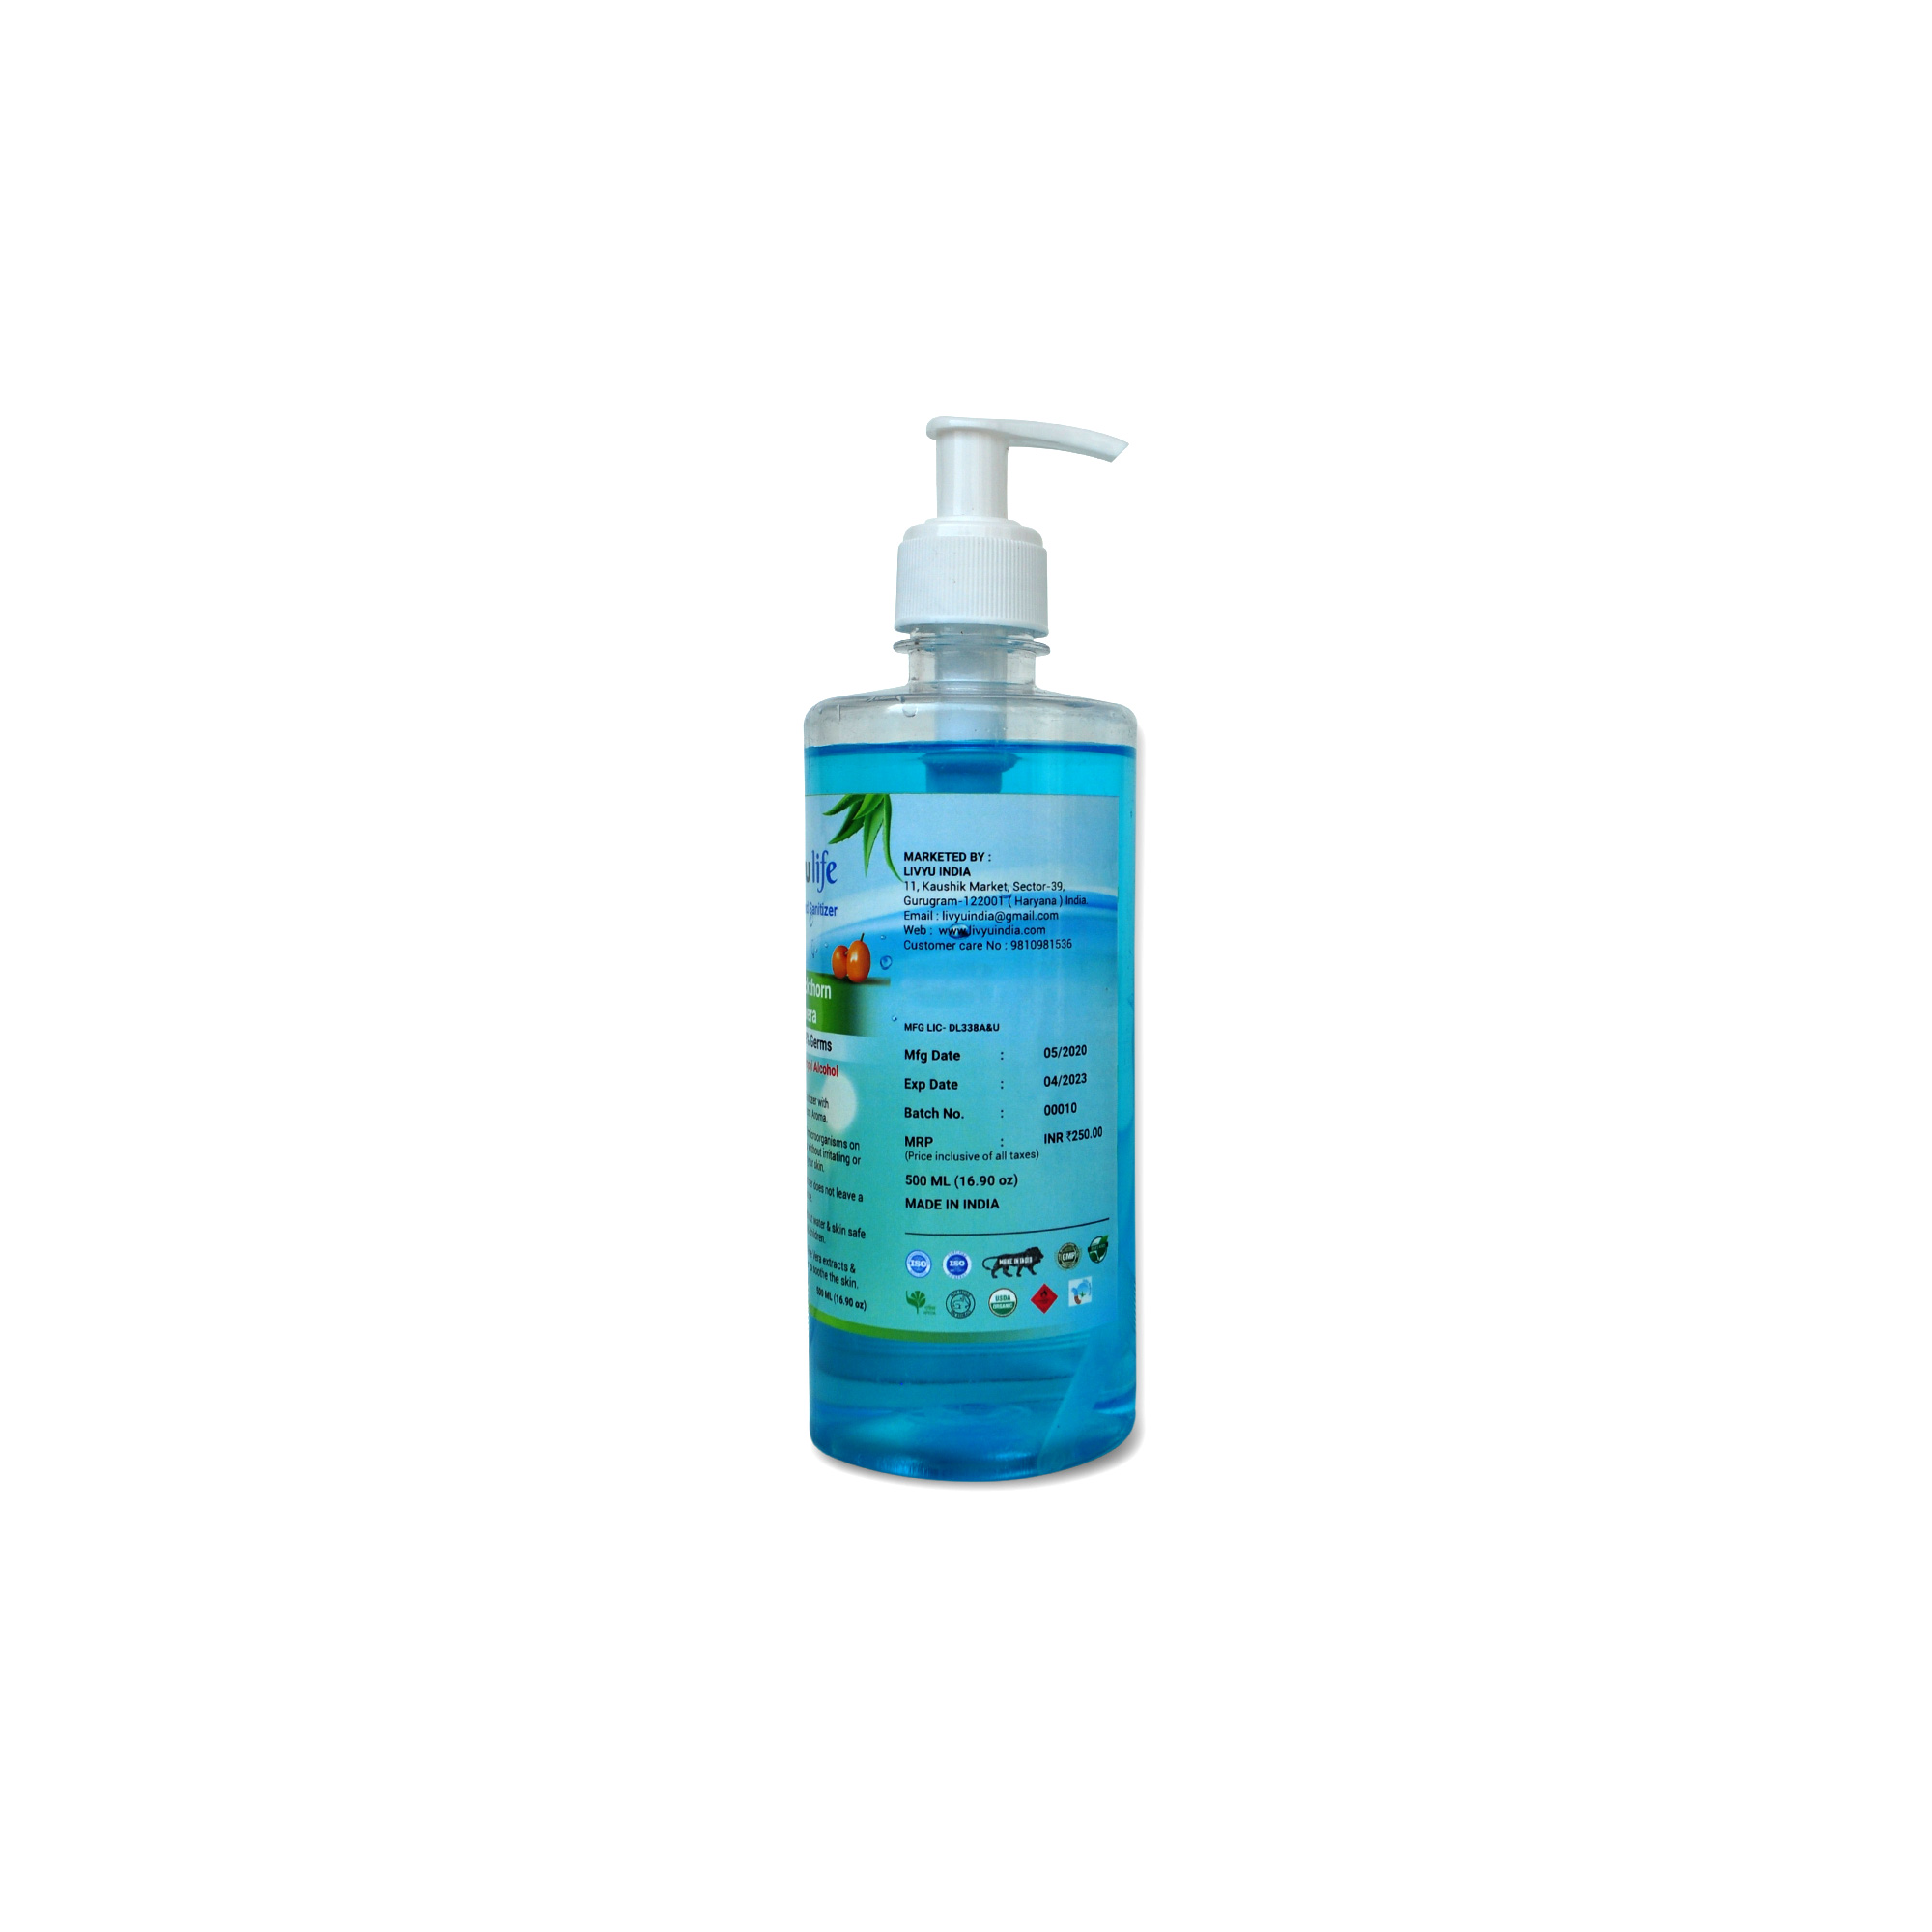 Herbal Alcohol Based Hand Sanitizer contain Green Tea & Aloe Vera Extracts with Seabuckthorn Aroma- 500ml  (6 Pcs pack)